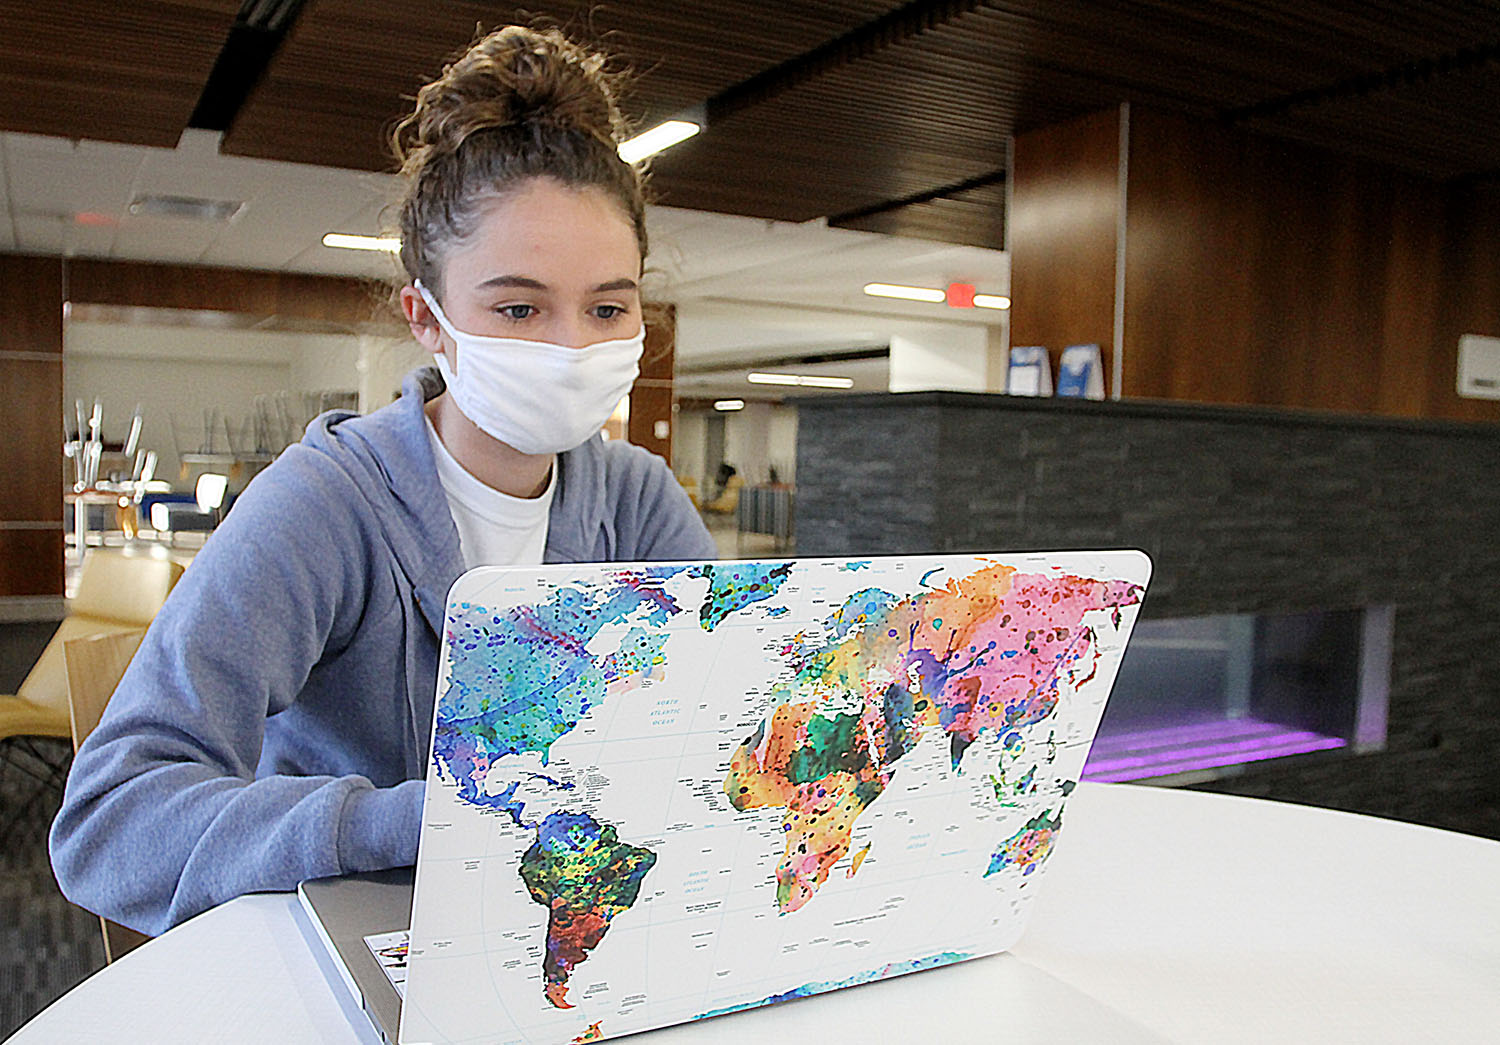 Sydney Atkinson, a business education major from Butte, is one of nearly 600 students enrolled in online courses or experiential learning opportunities during UNK's three-week January intersession.